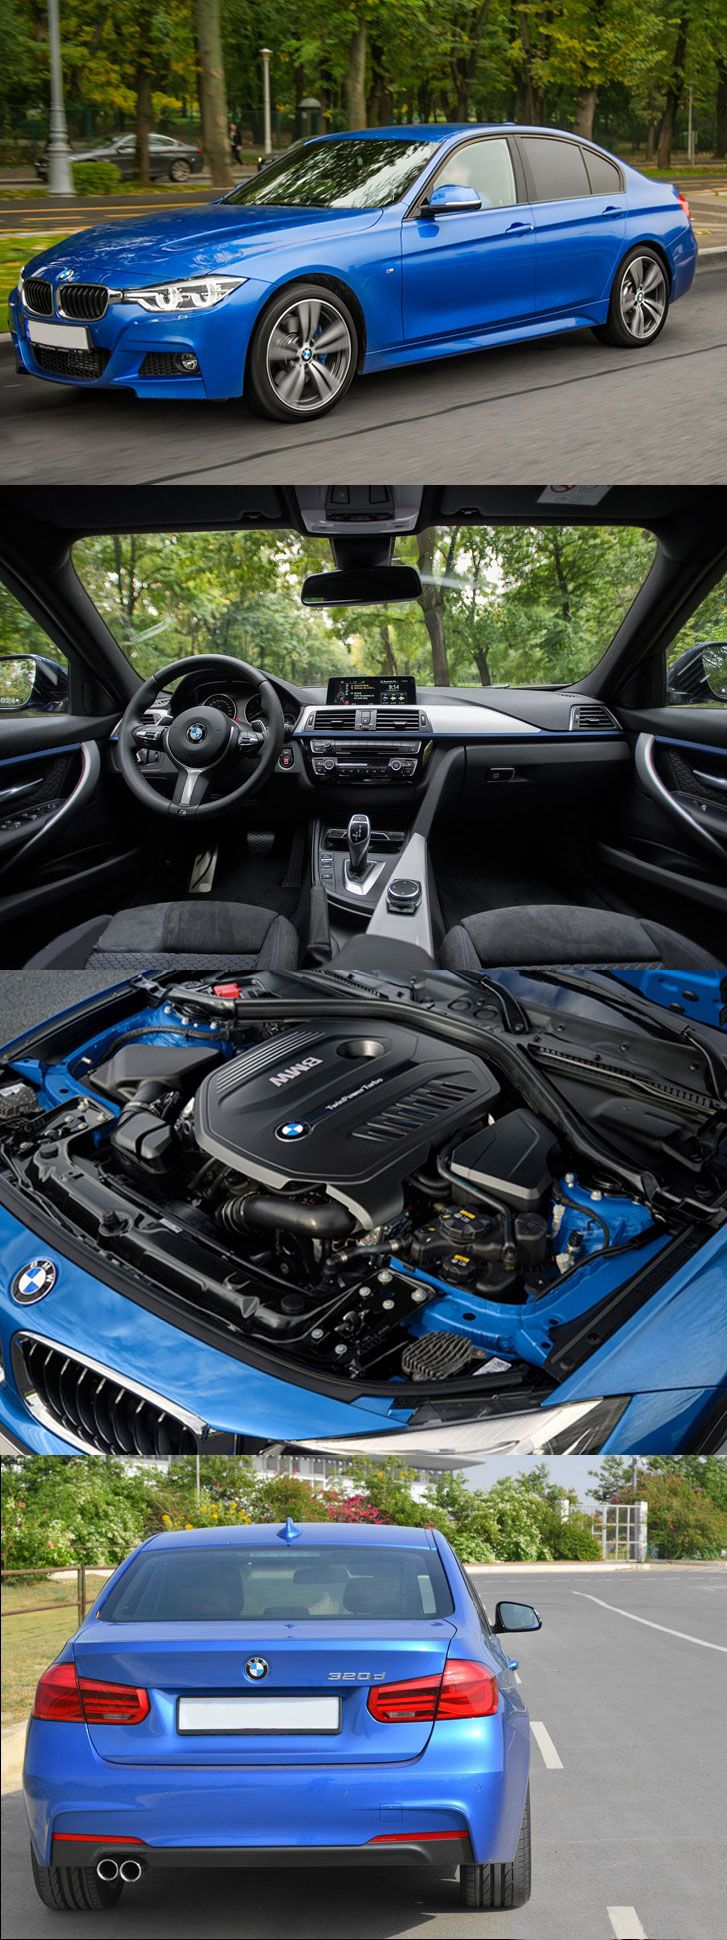 New features of bmw 320d bmw bmw_3_series bmw320d